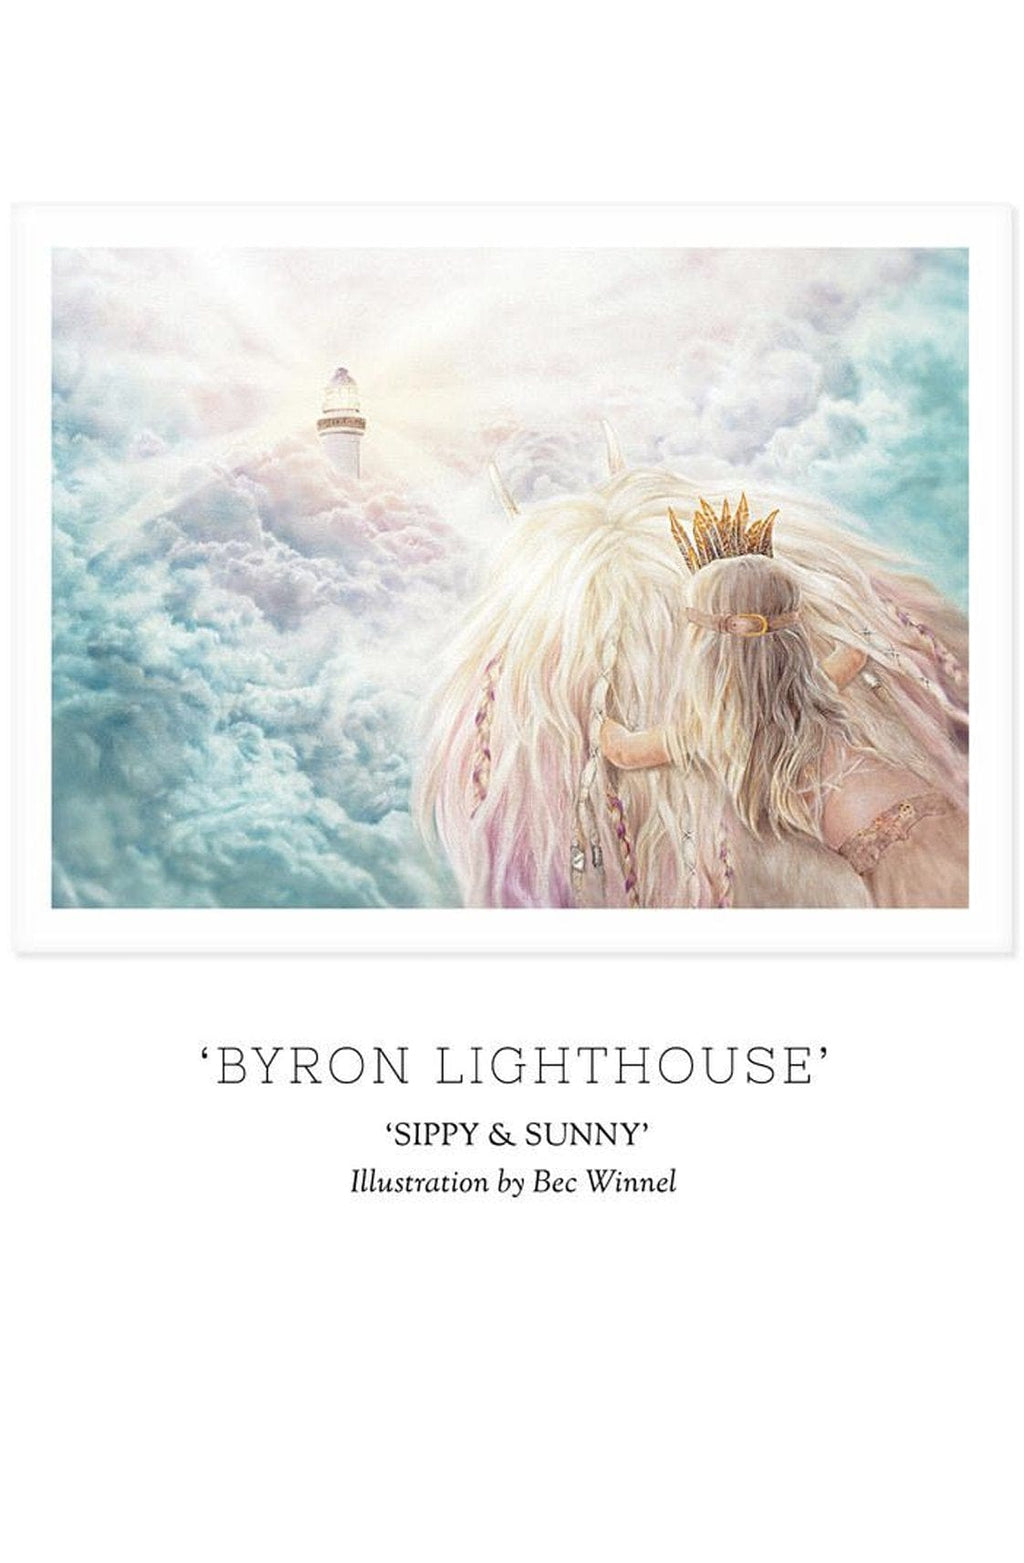 Unclebearskin Productions, SIPPY & SUNNY - 'BYRON LIGHTHOUSE' Print - Hello Little Birdie